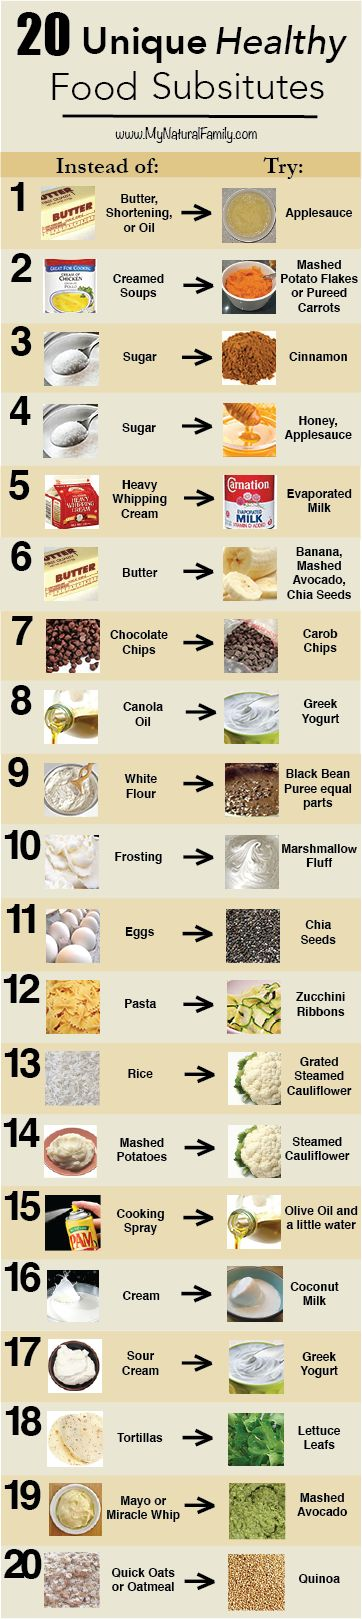 Best 25 dark chocolate nutrition ideas on pinterest for Atkins cuisine baking mix substitute